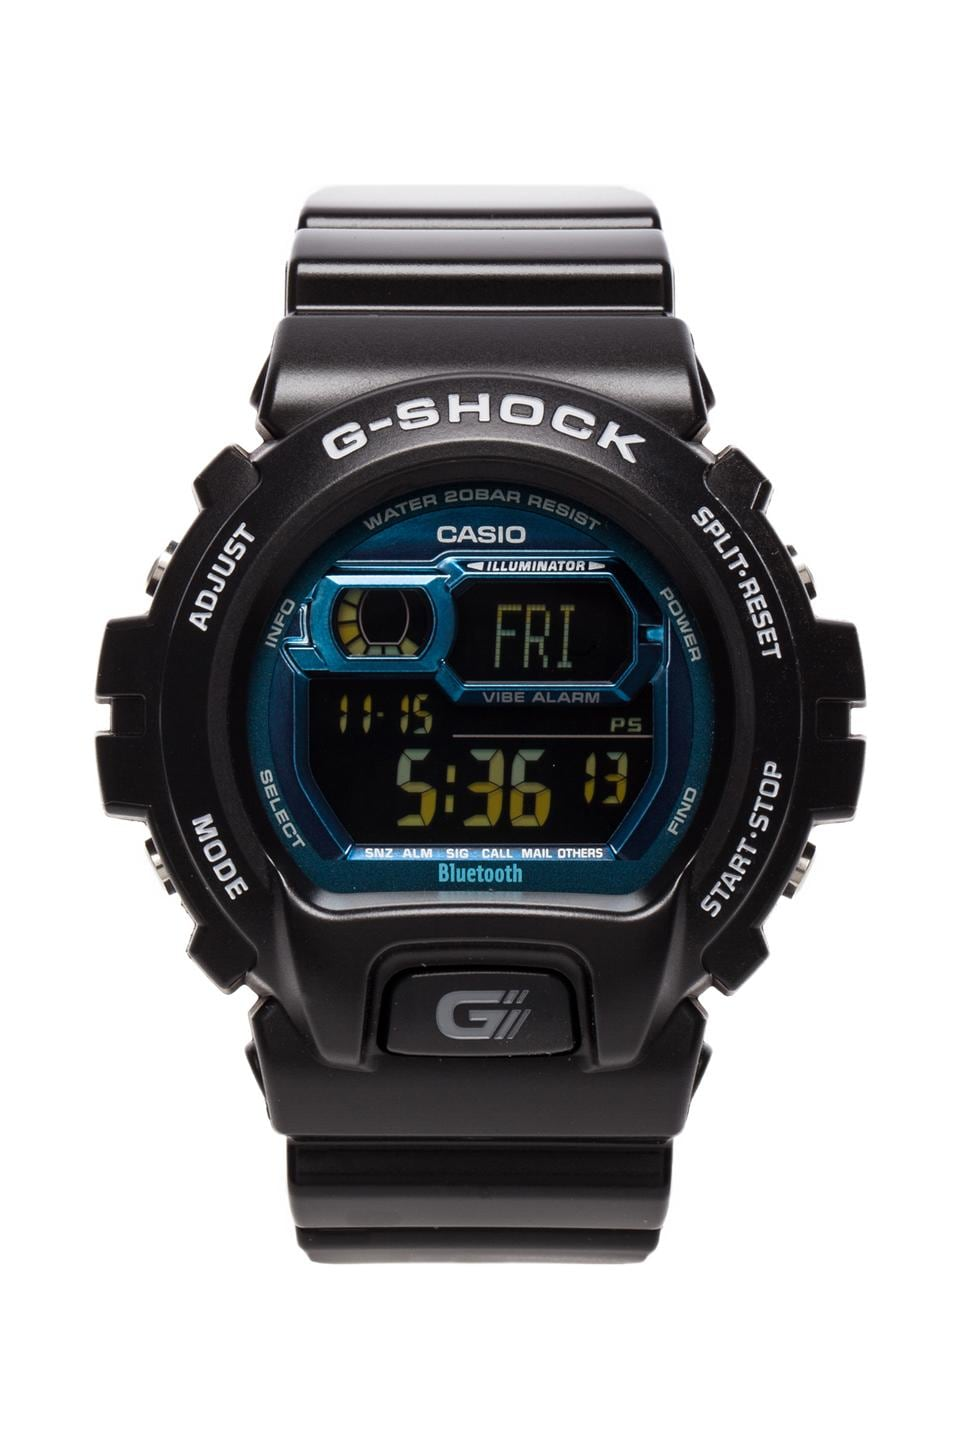 G-Shock GB-900 Bluetooth Edition in Black